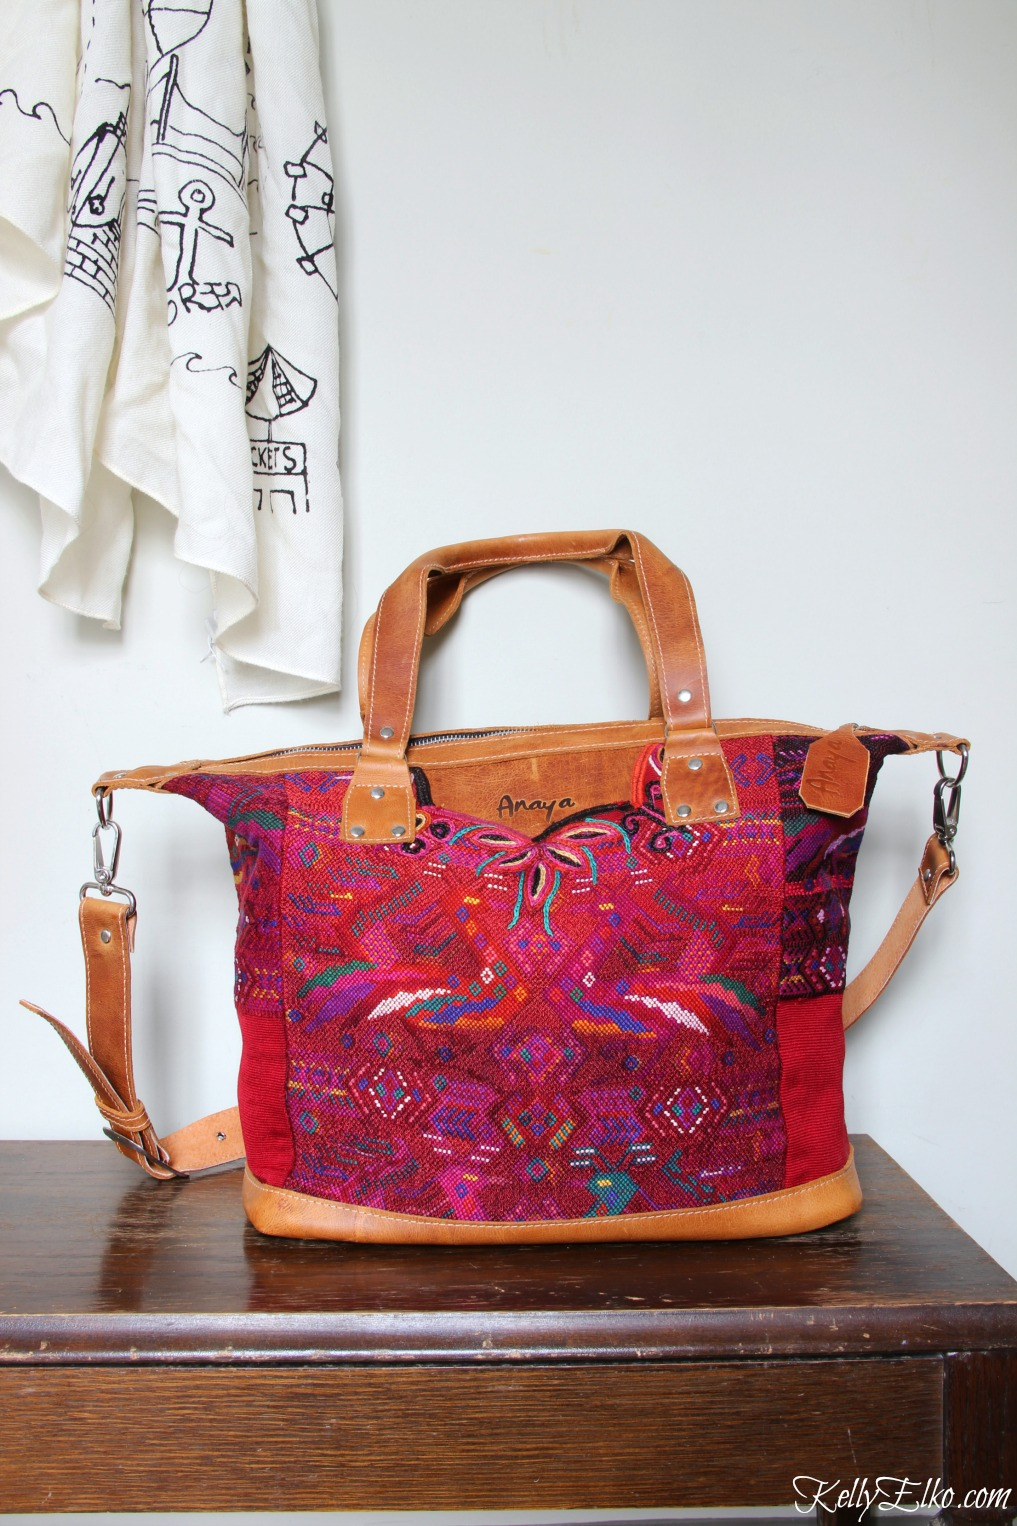 Anaya bags are made from vintage huipil fabric and are stunning! kellyelko.com